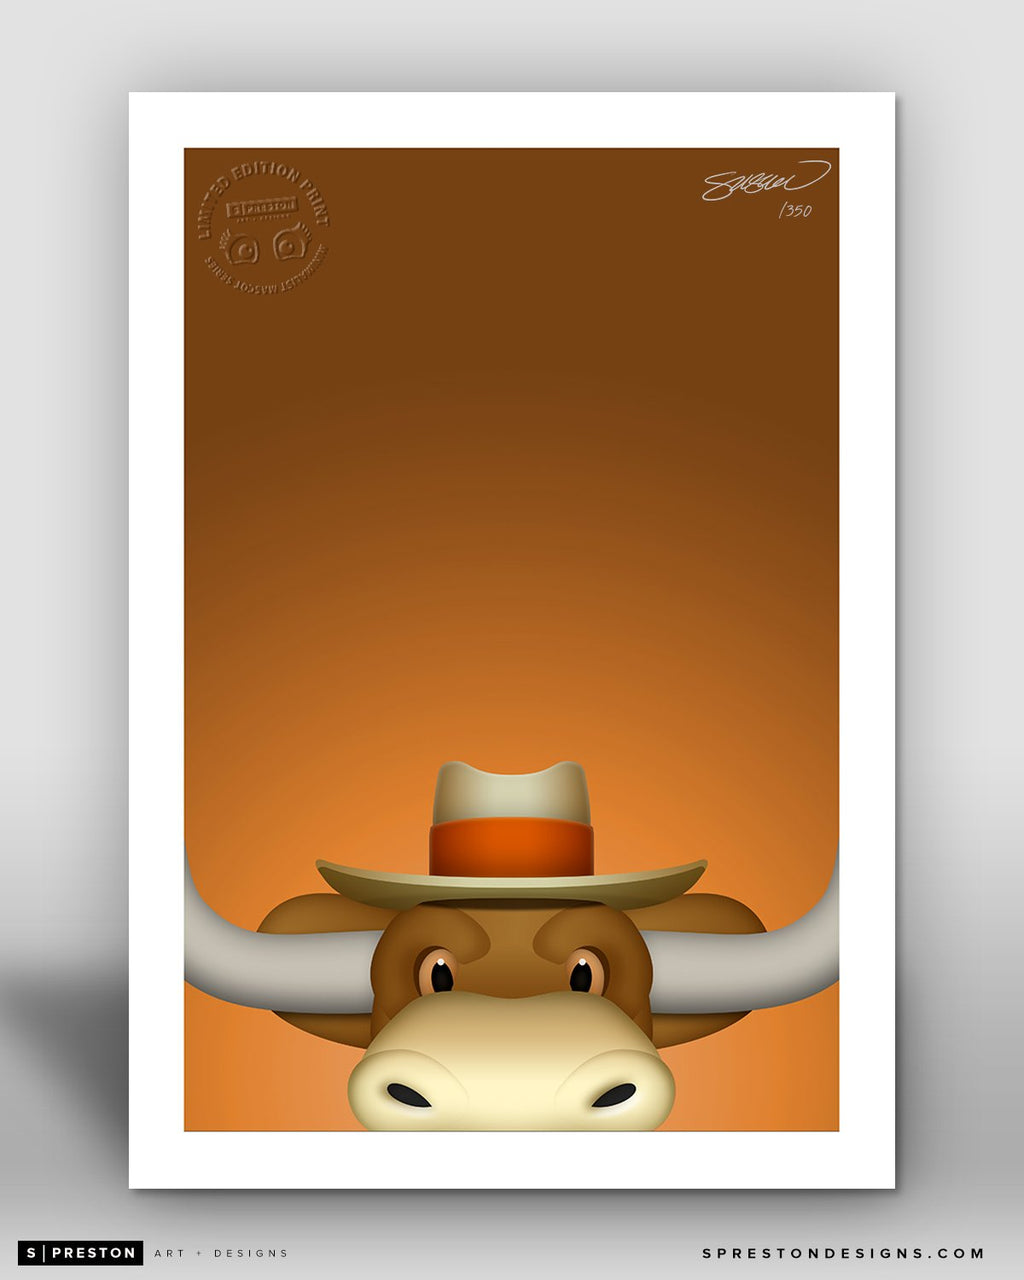 Minimalist Hook'em - University of Texas - S. Preston